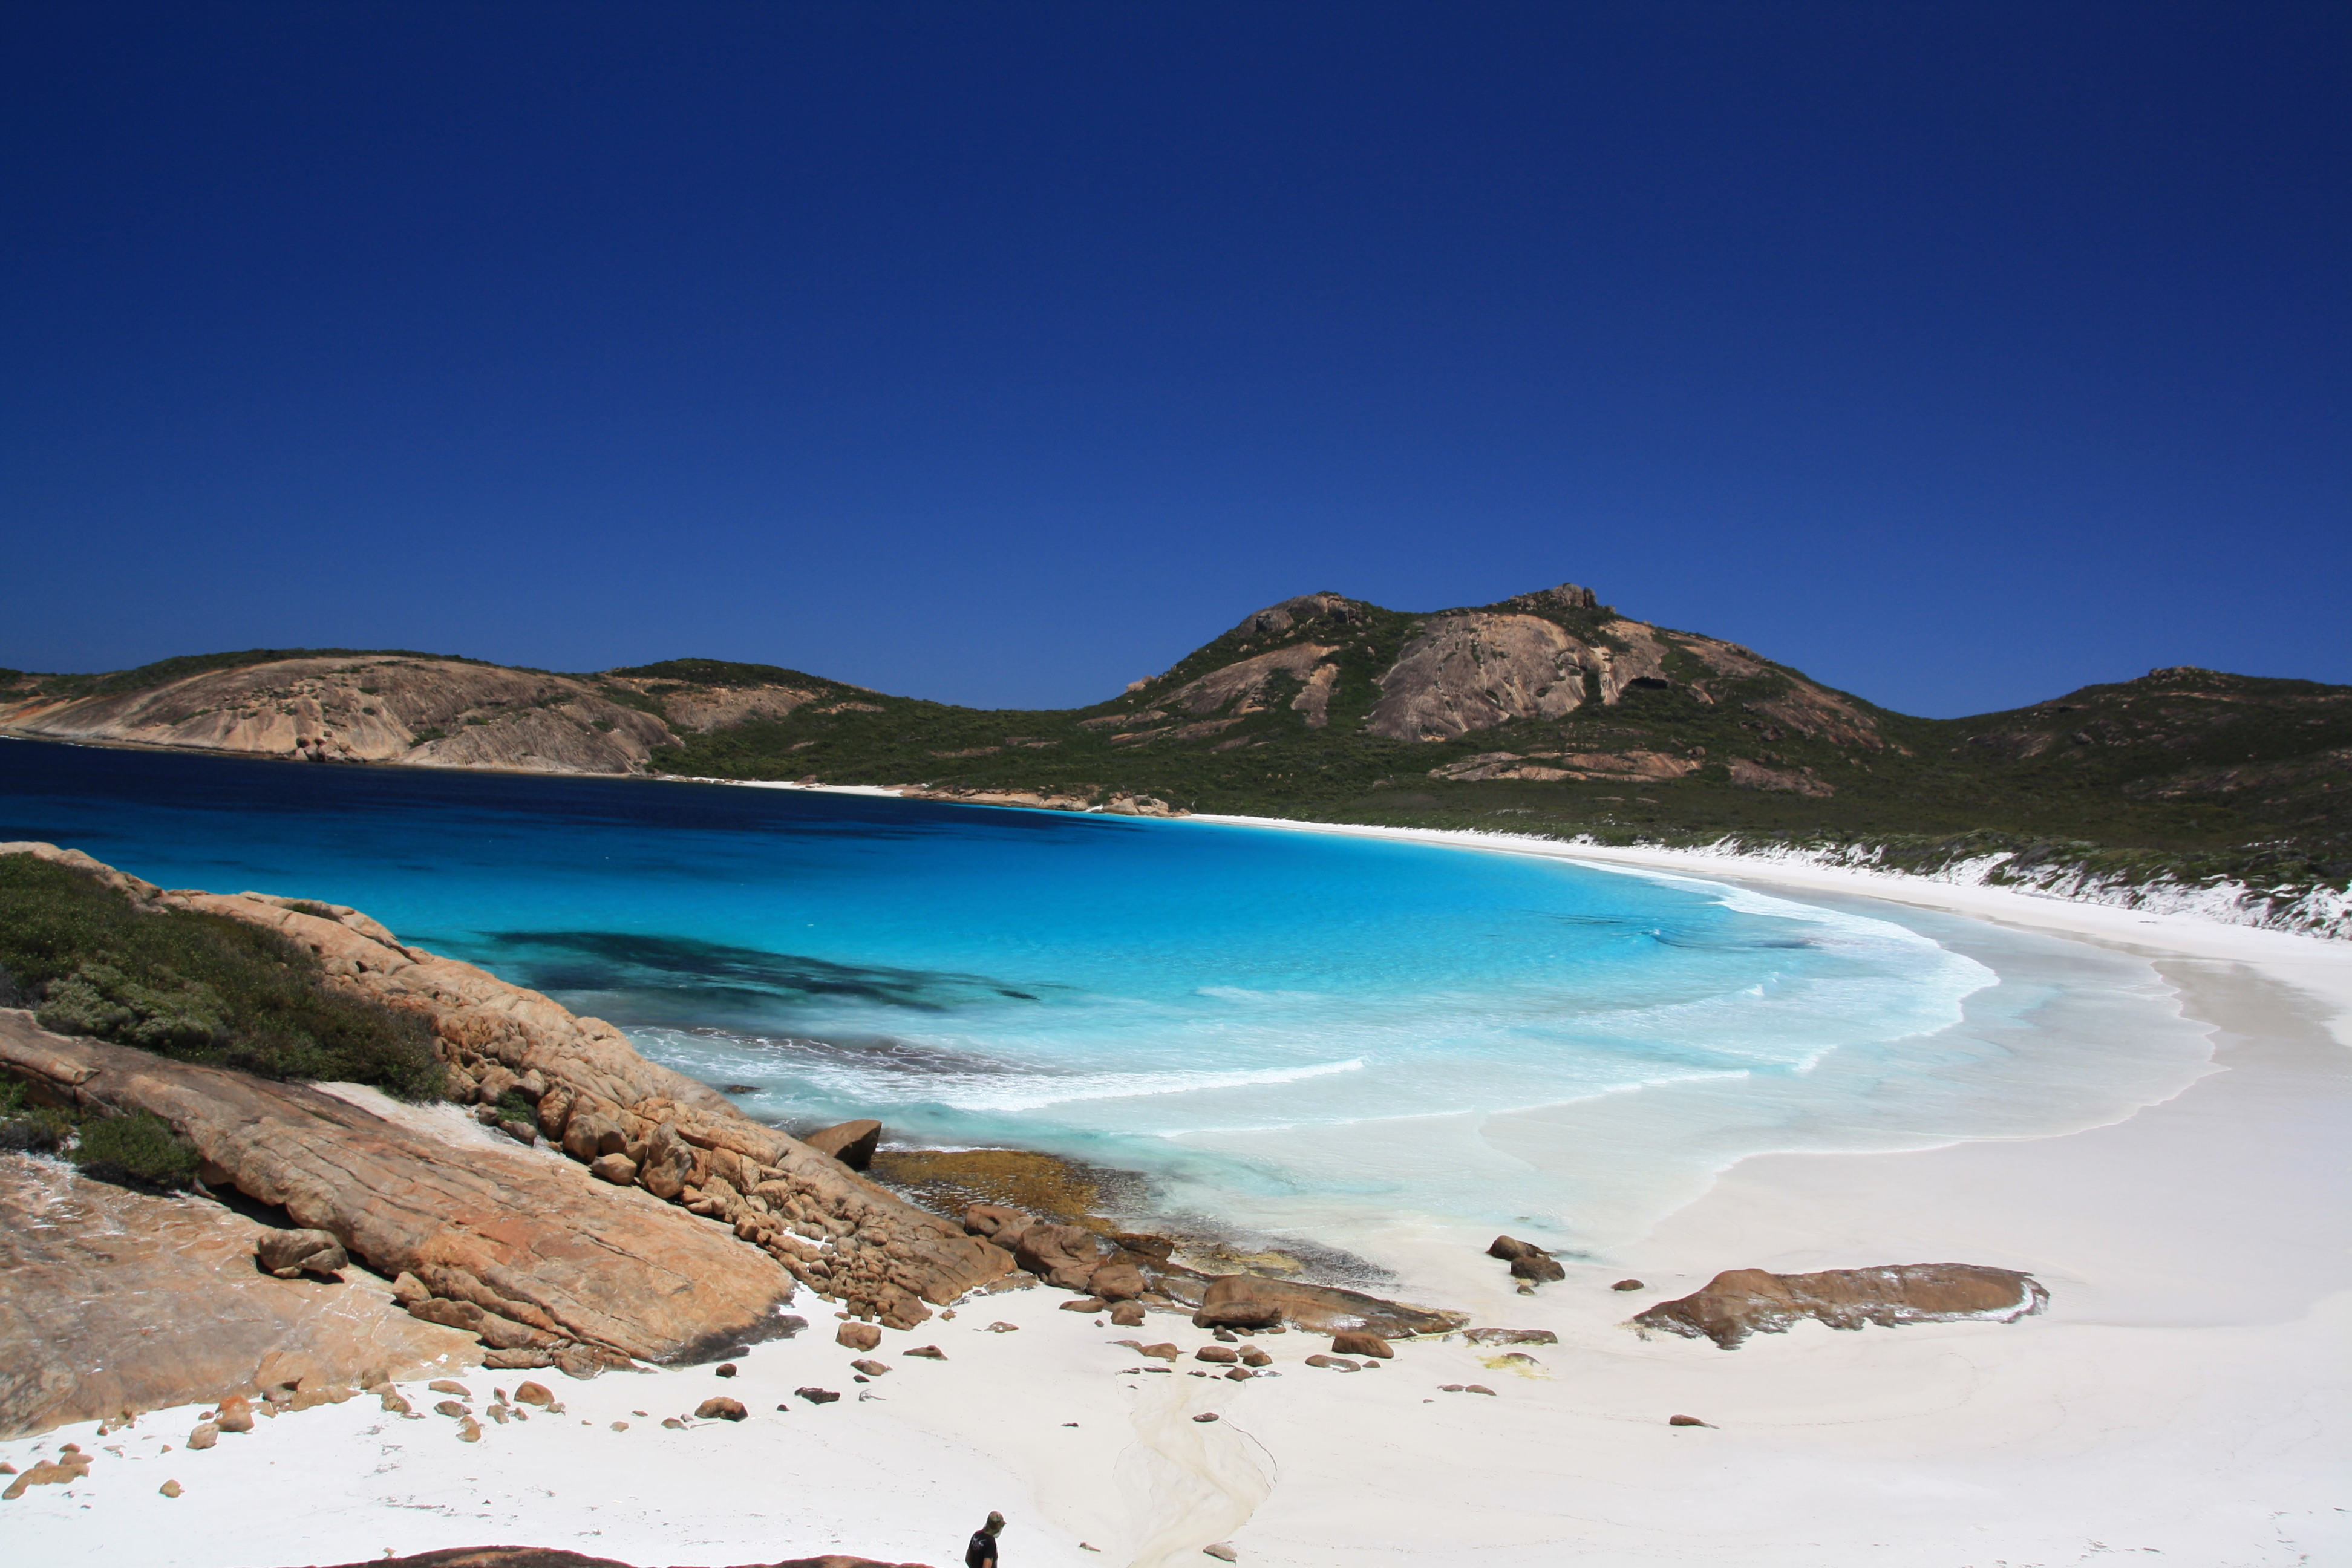 Hell Fire Bay, Esperance